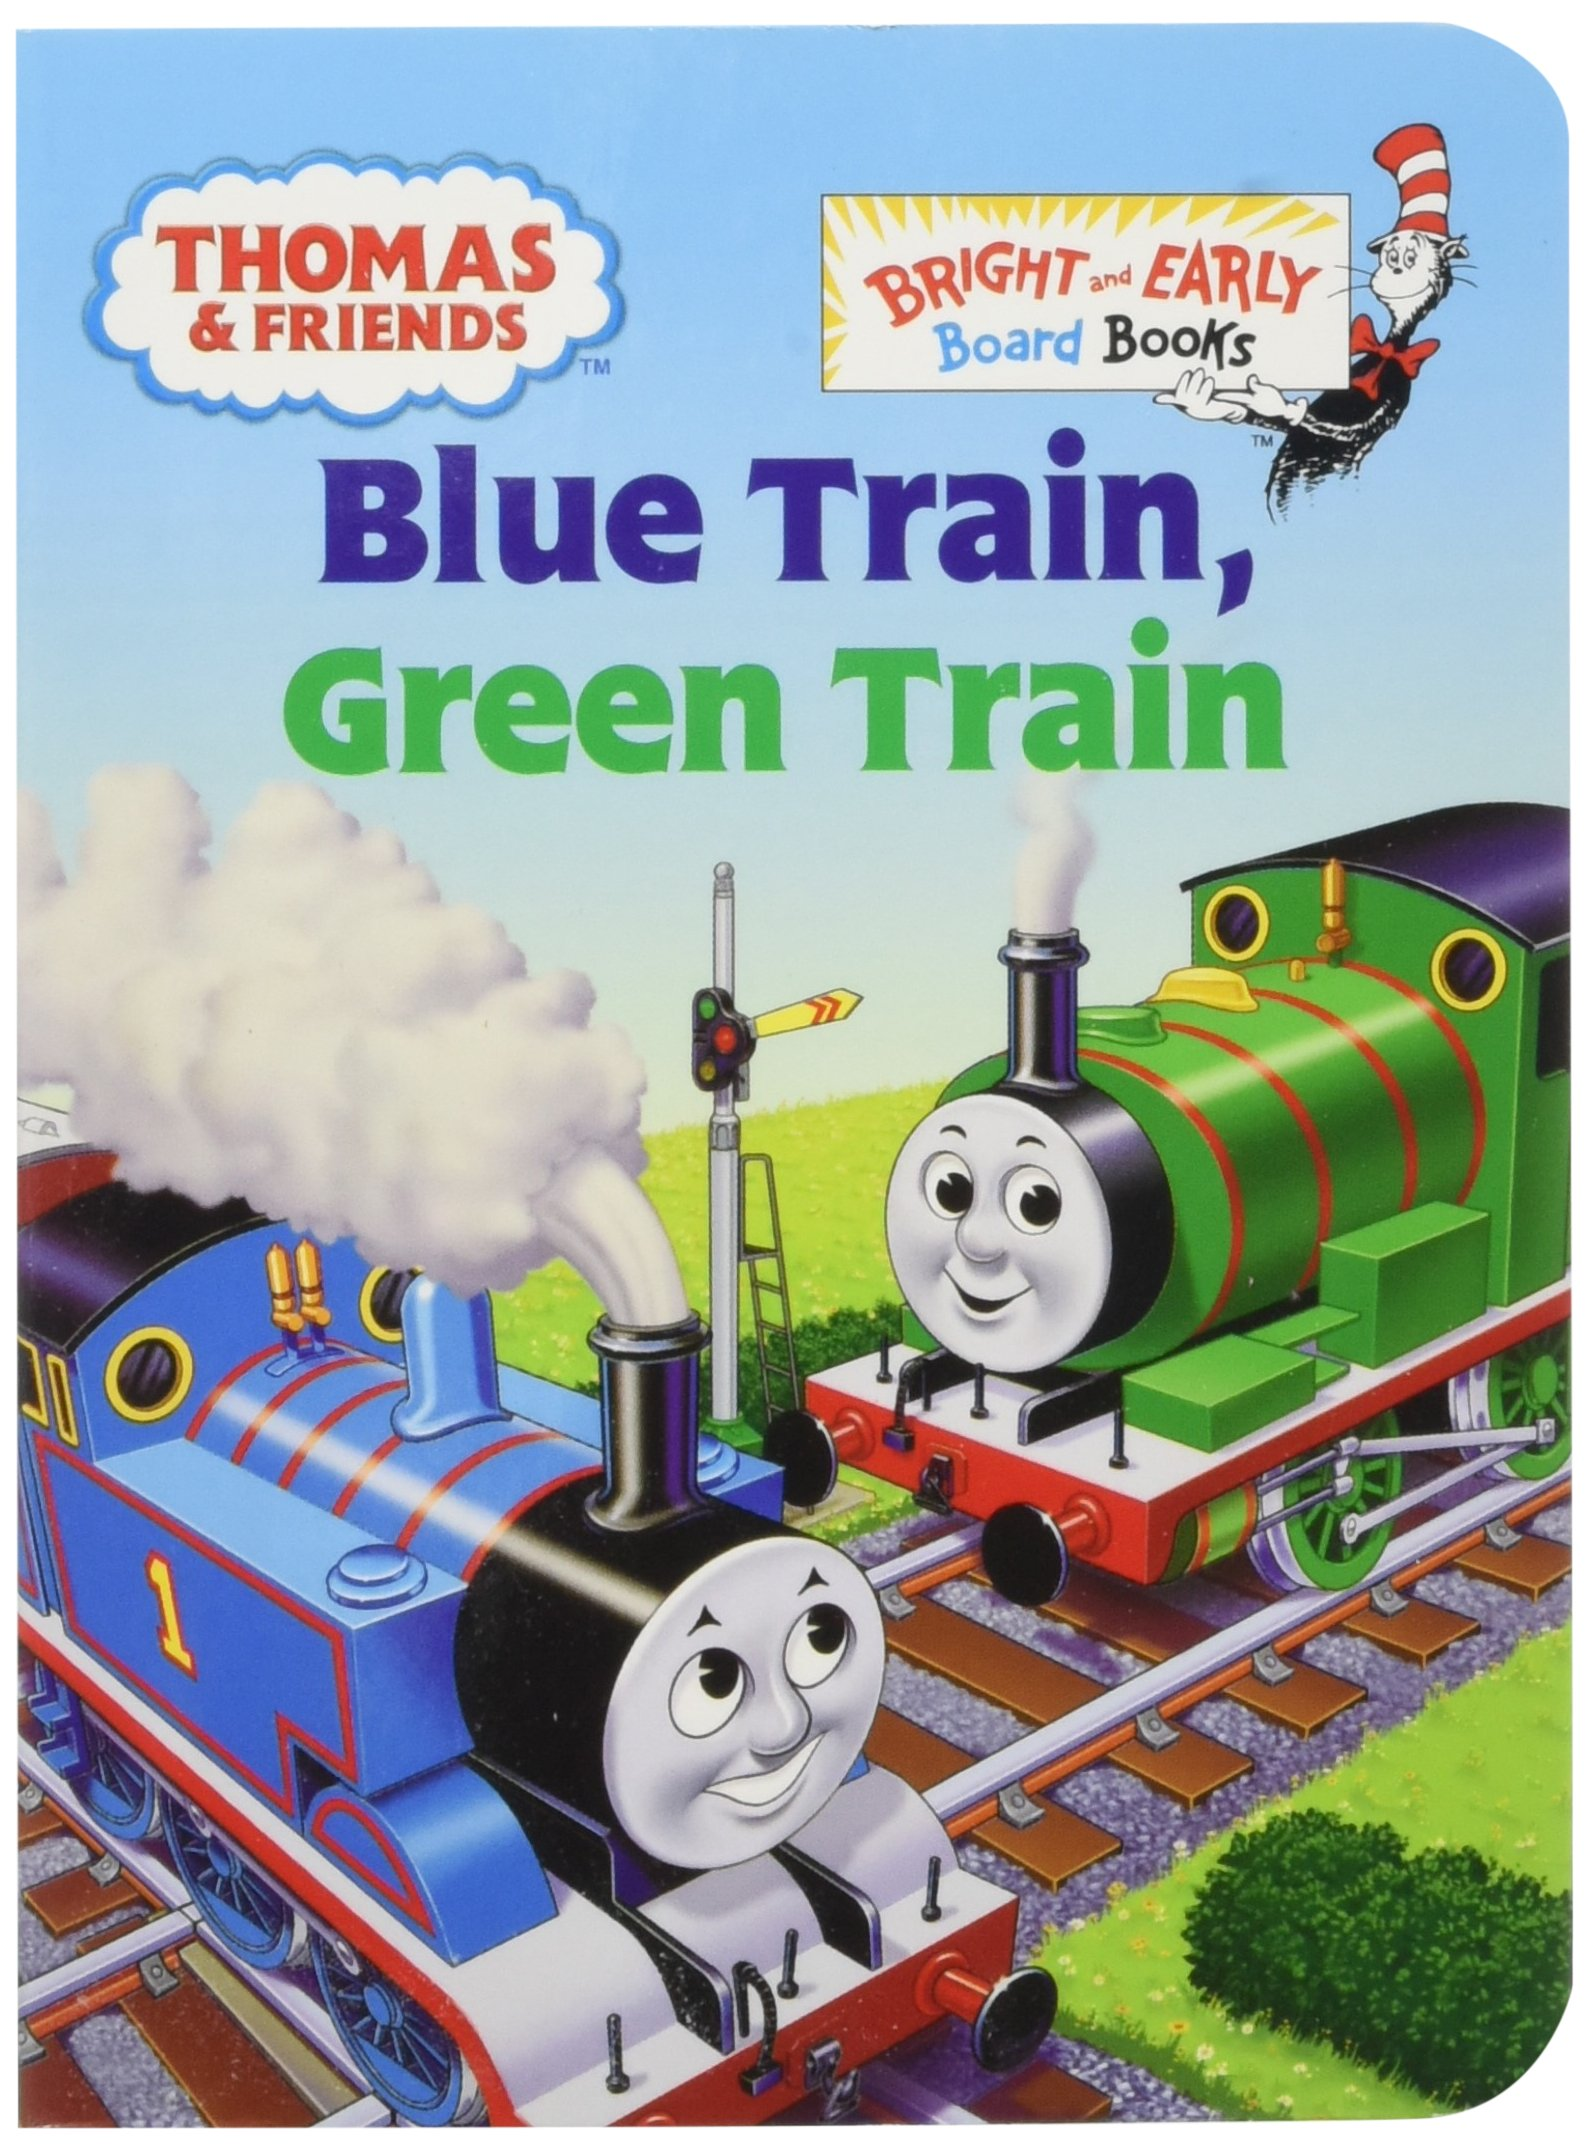 thomas and friends my red railway book box bright early board